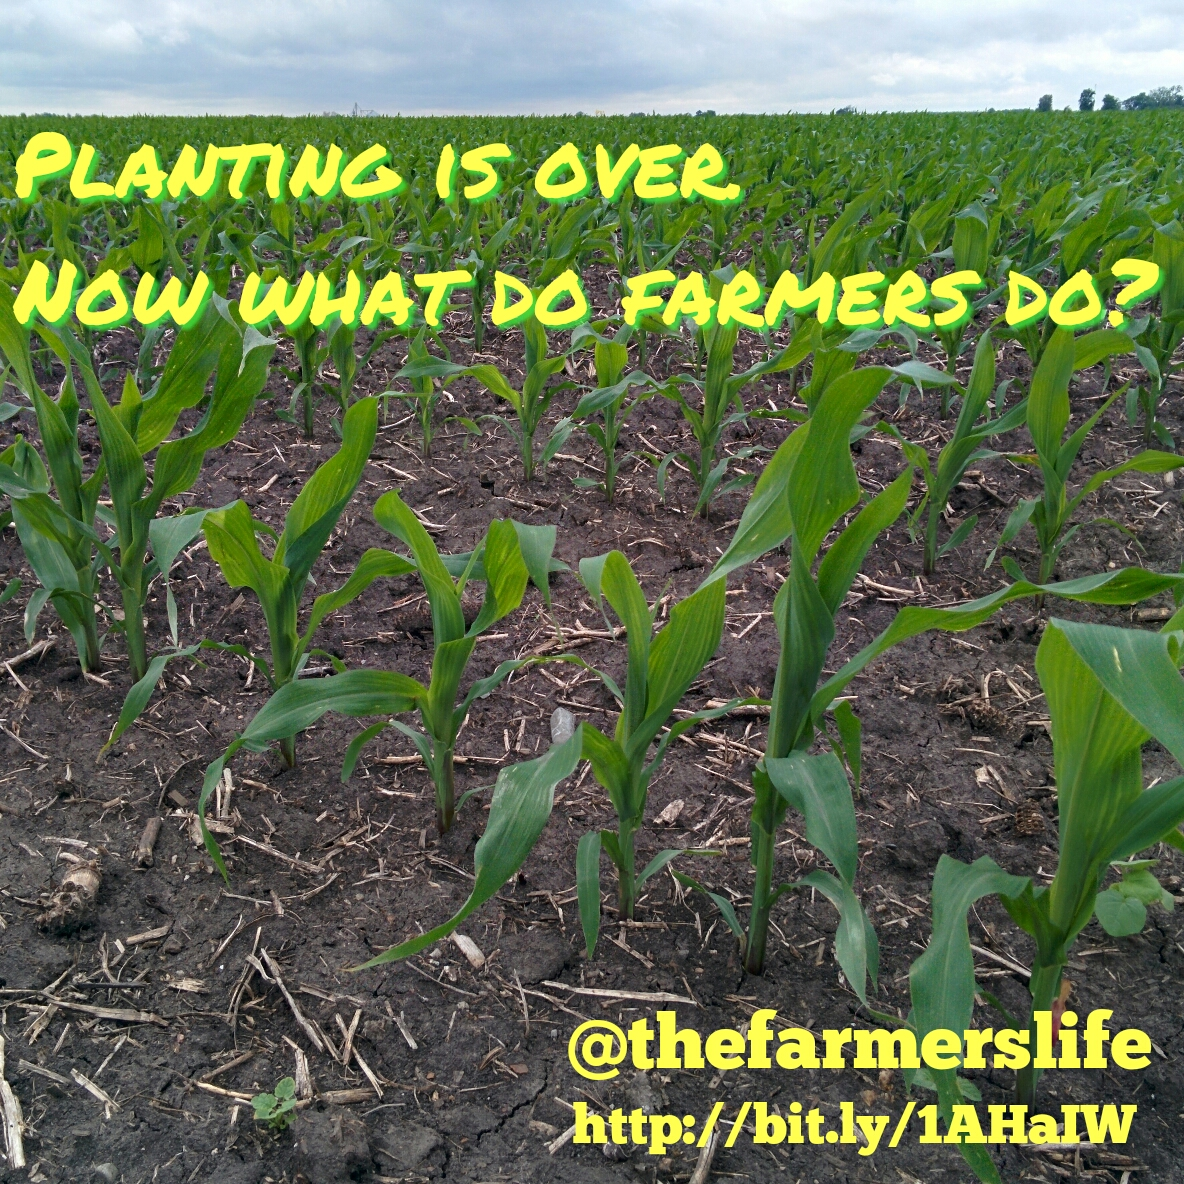 Planting is over  Now what do farmers do? - The Farmer's Life